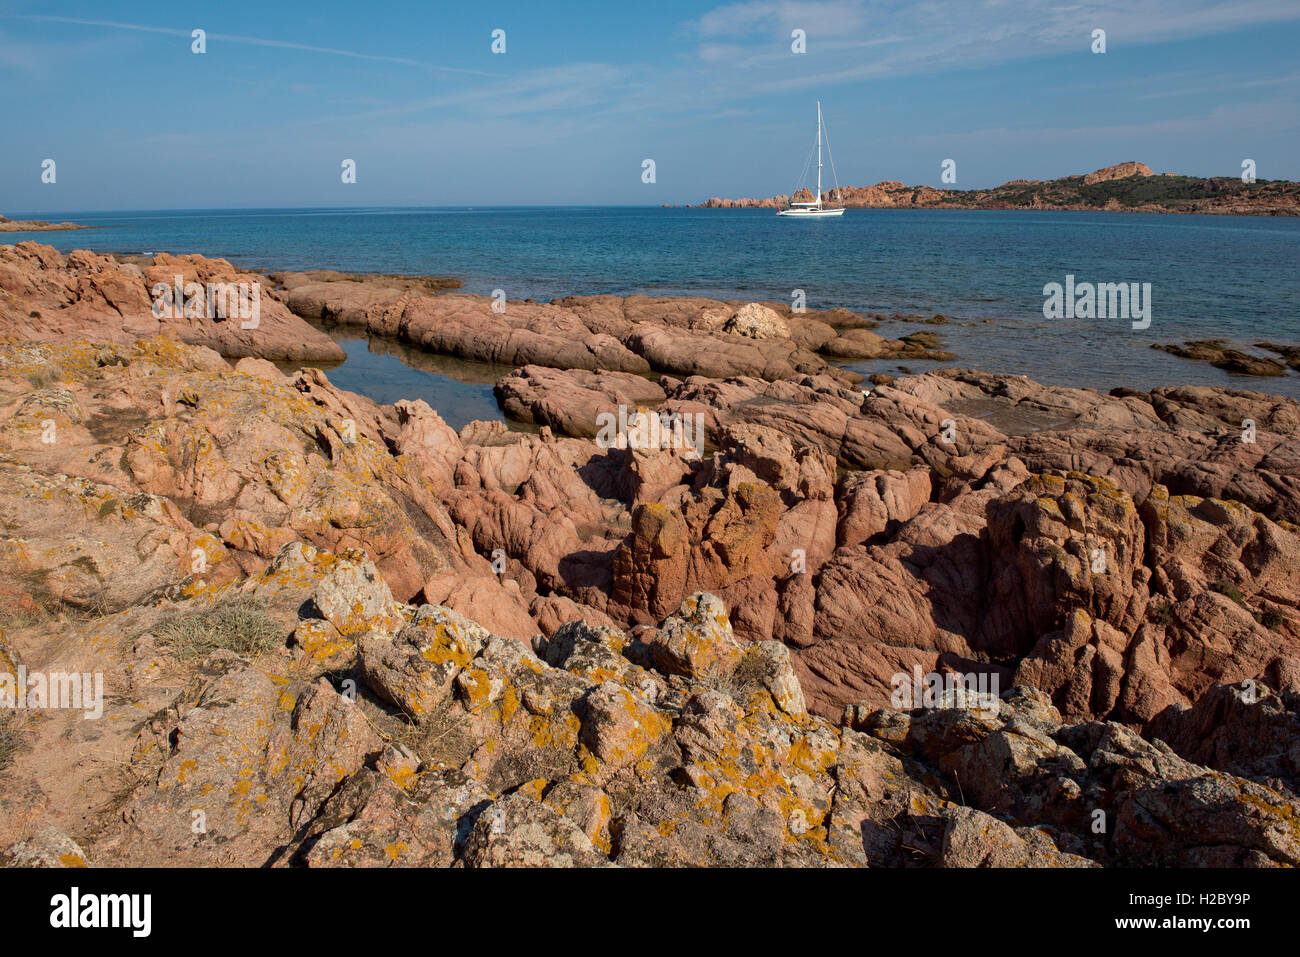 Red granite rugged coastline and blue sea and moored yacht off the Isola Rossa in western Sardinia, September - Stock Image